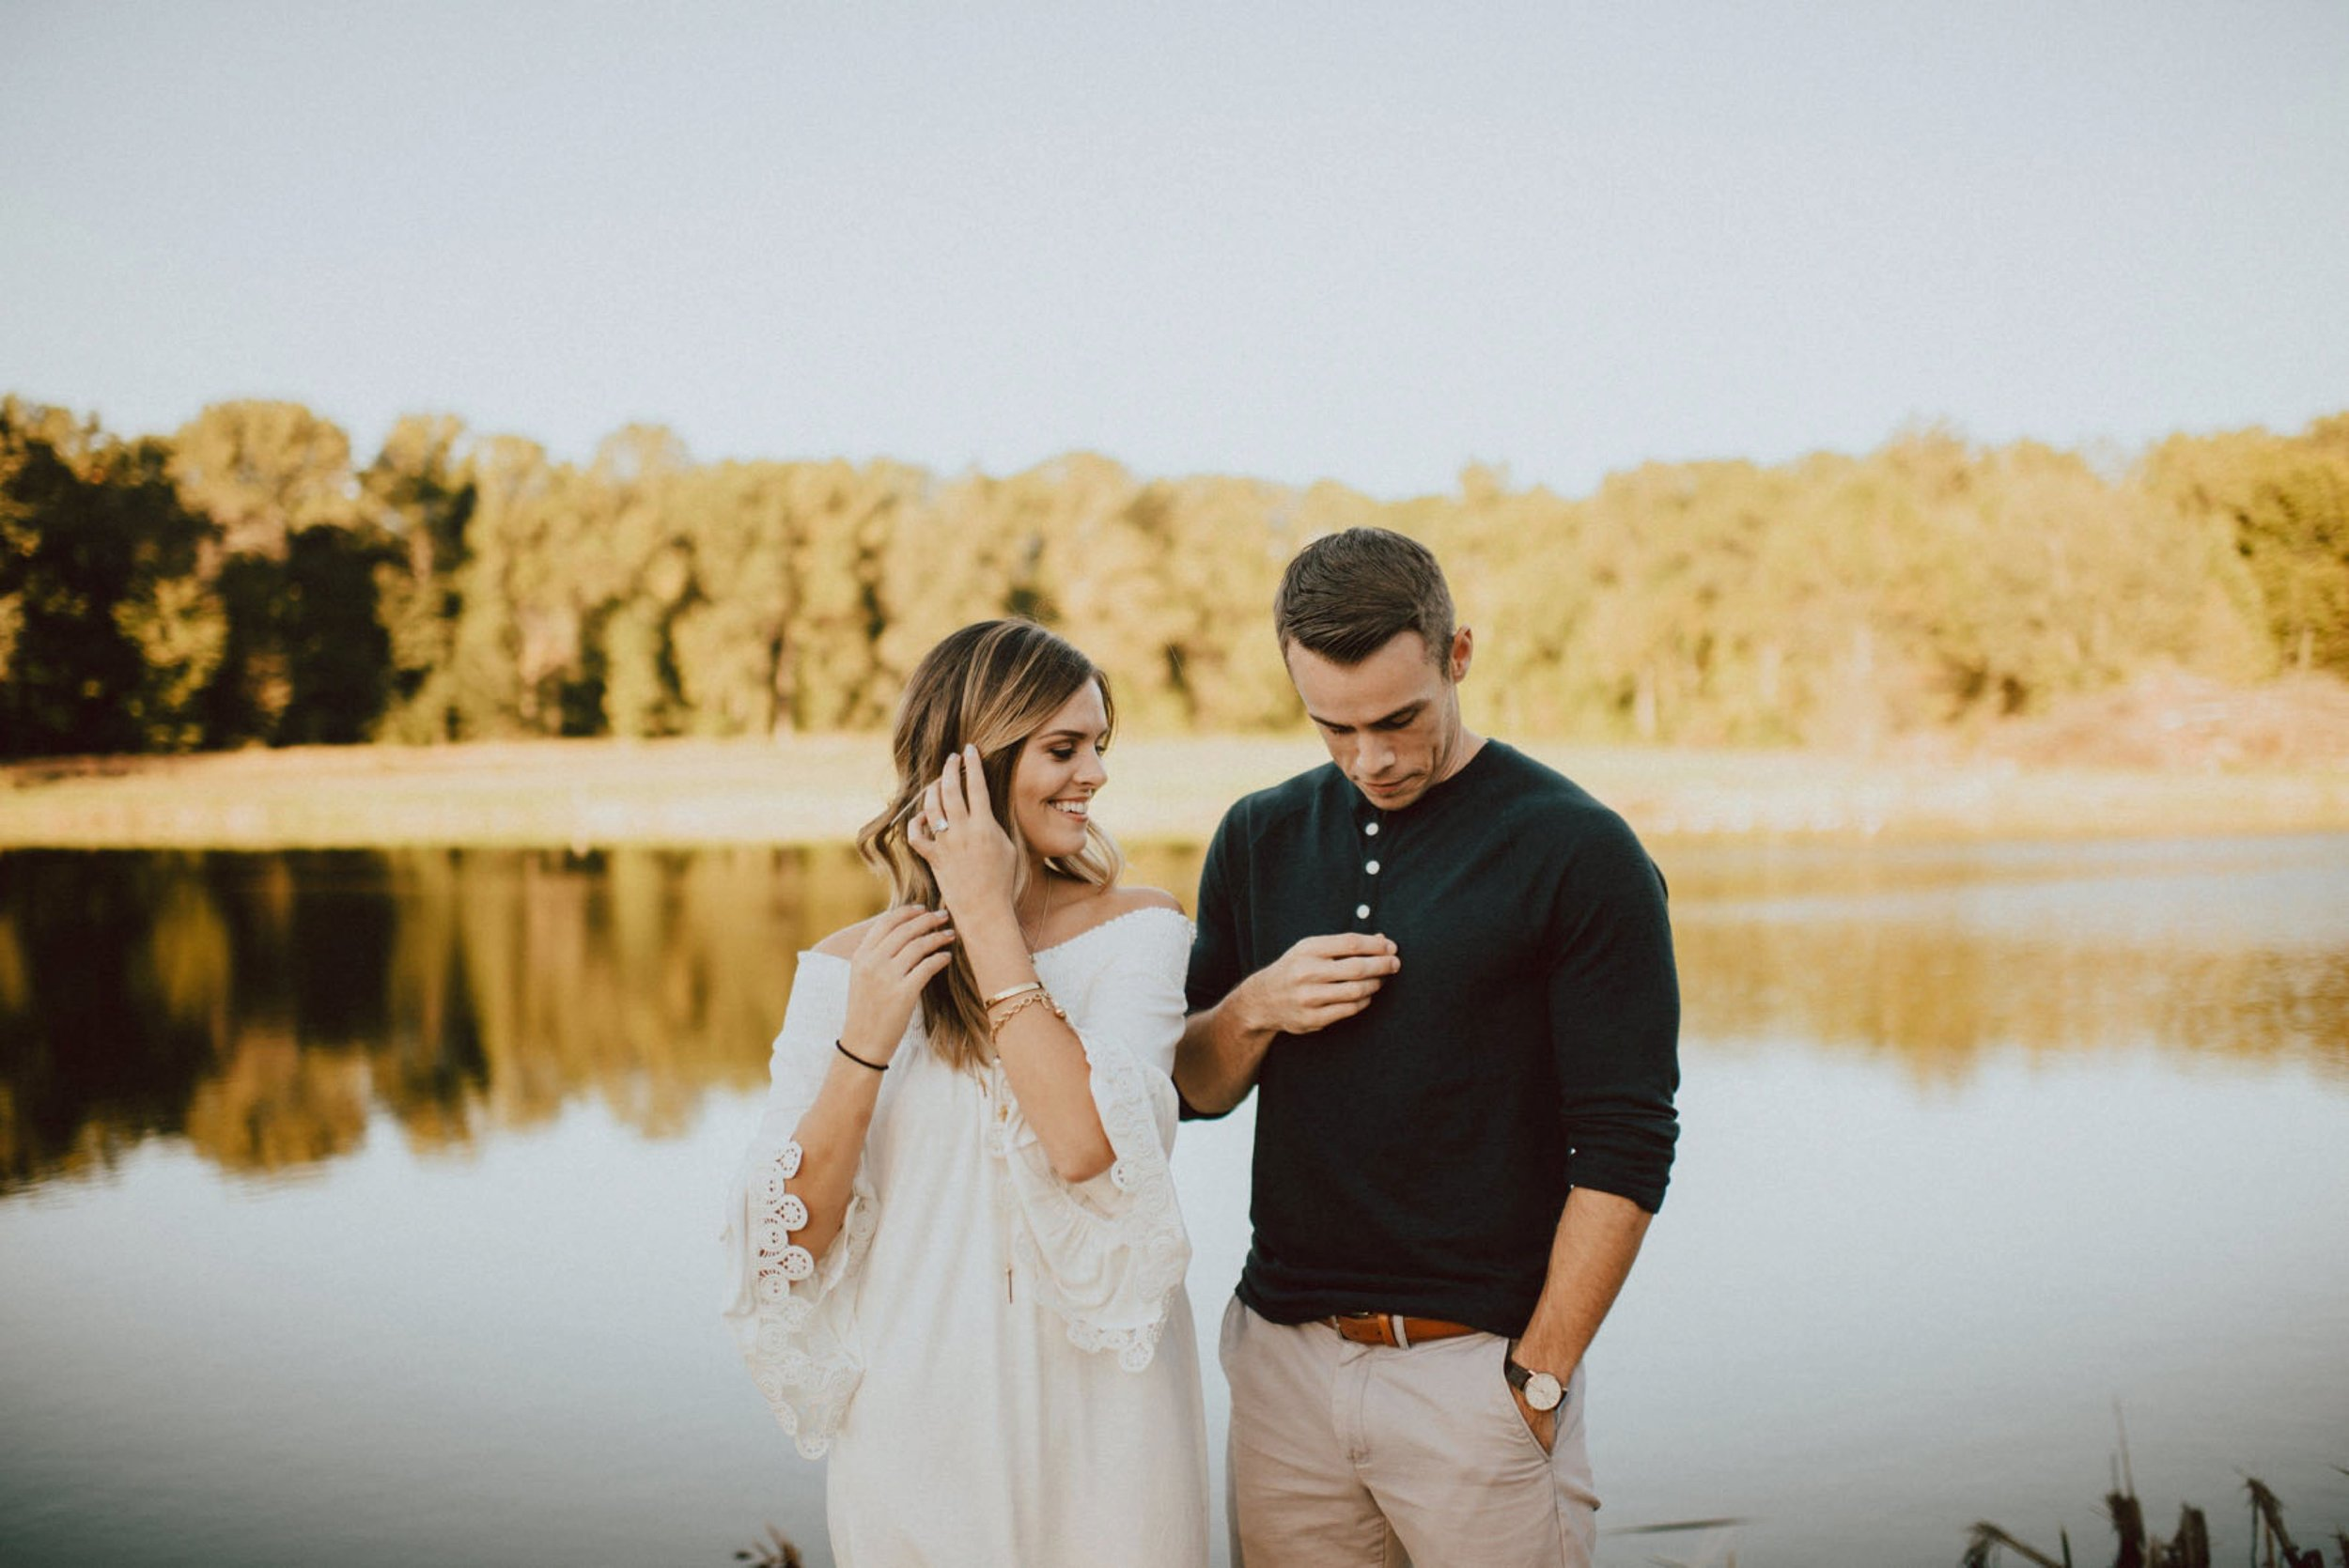 elkton-maryland-engagement-session-25.jpg